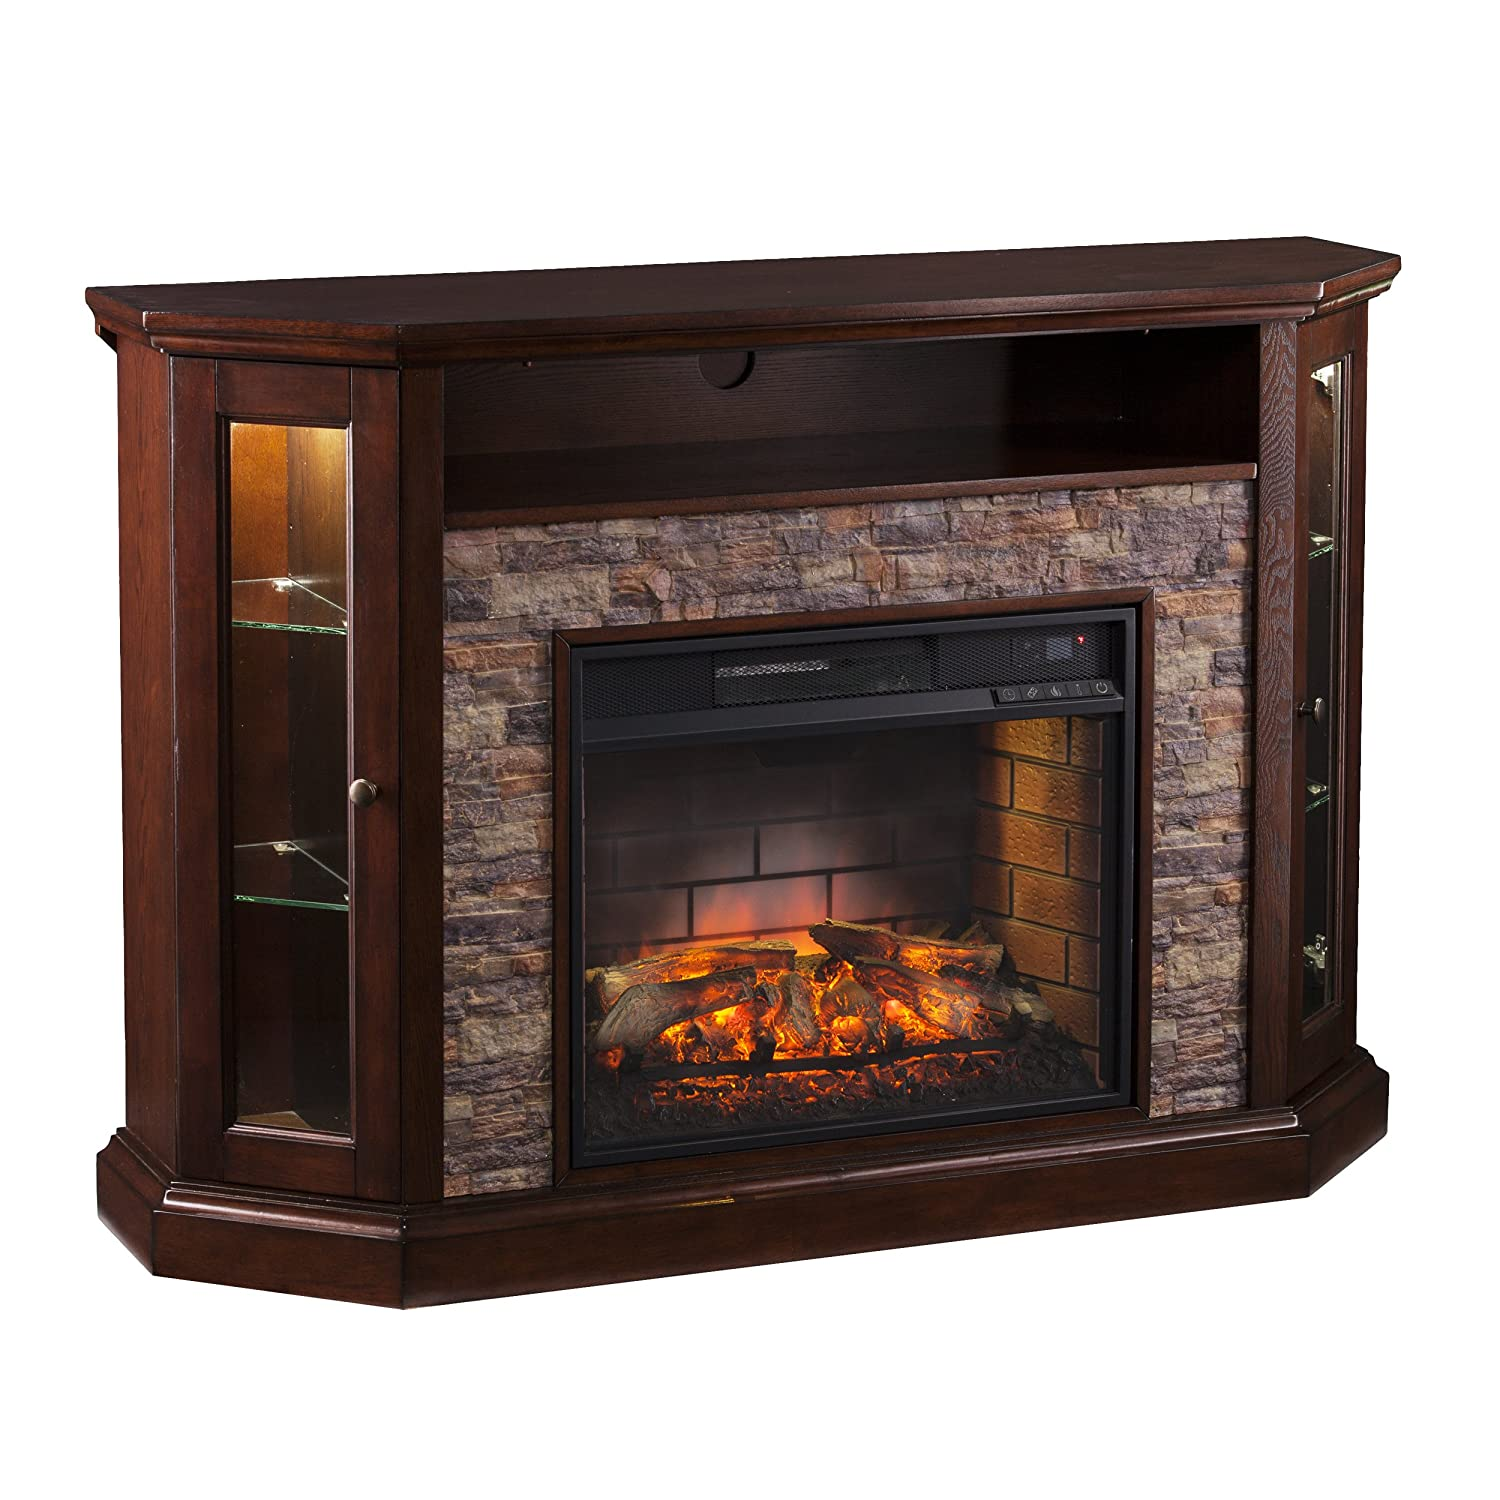 Amazon com southern enterprises rollins convertible corner infrared electric media fireplace 52 wide espresso finish and faux stone kitchen dining